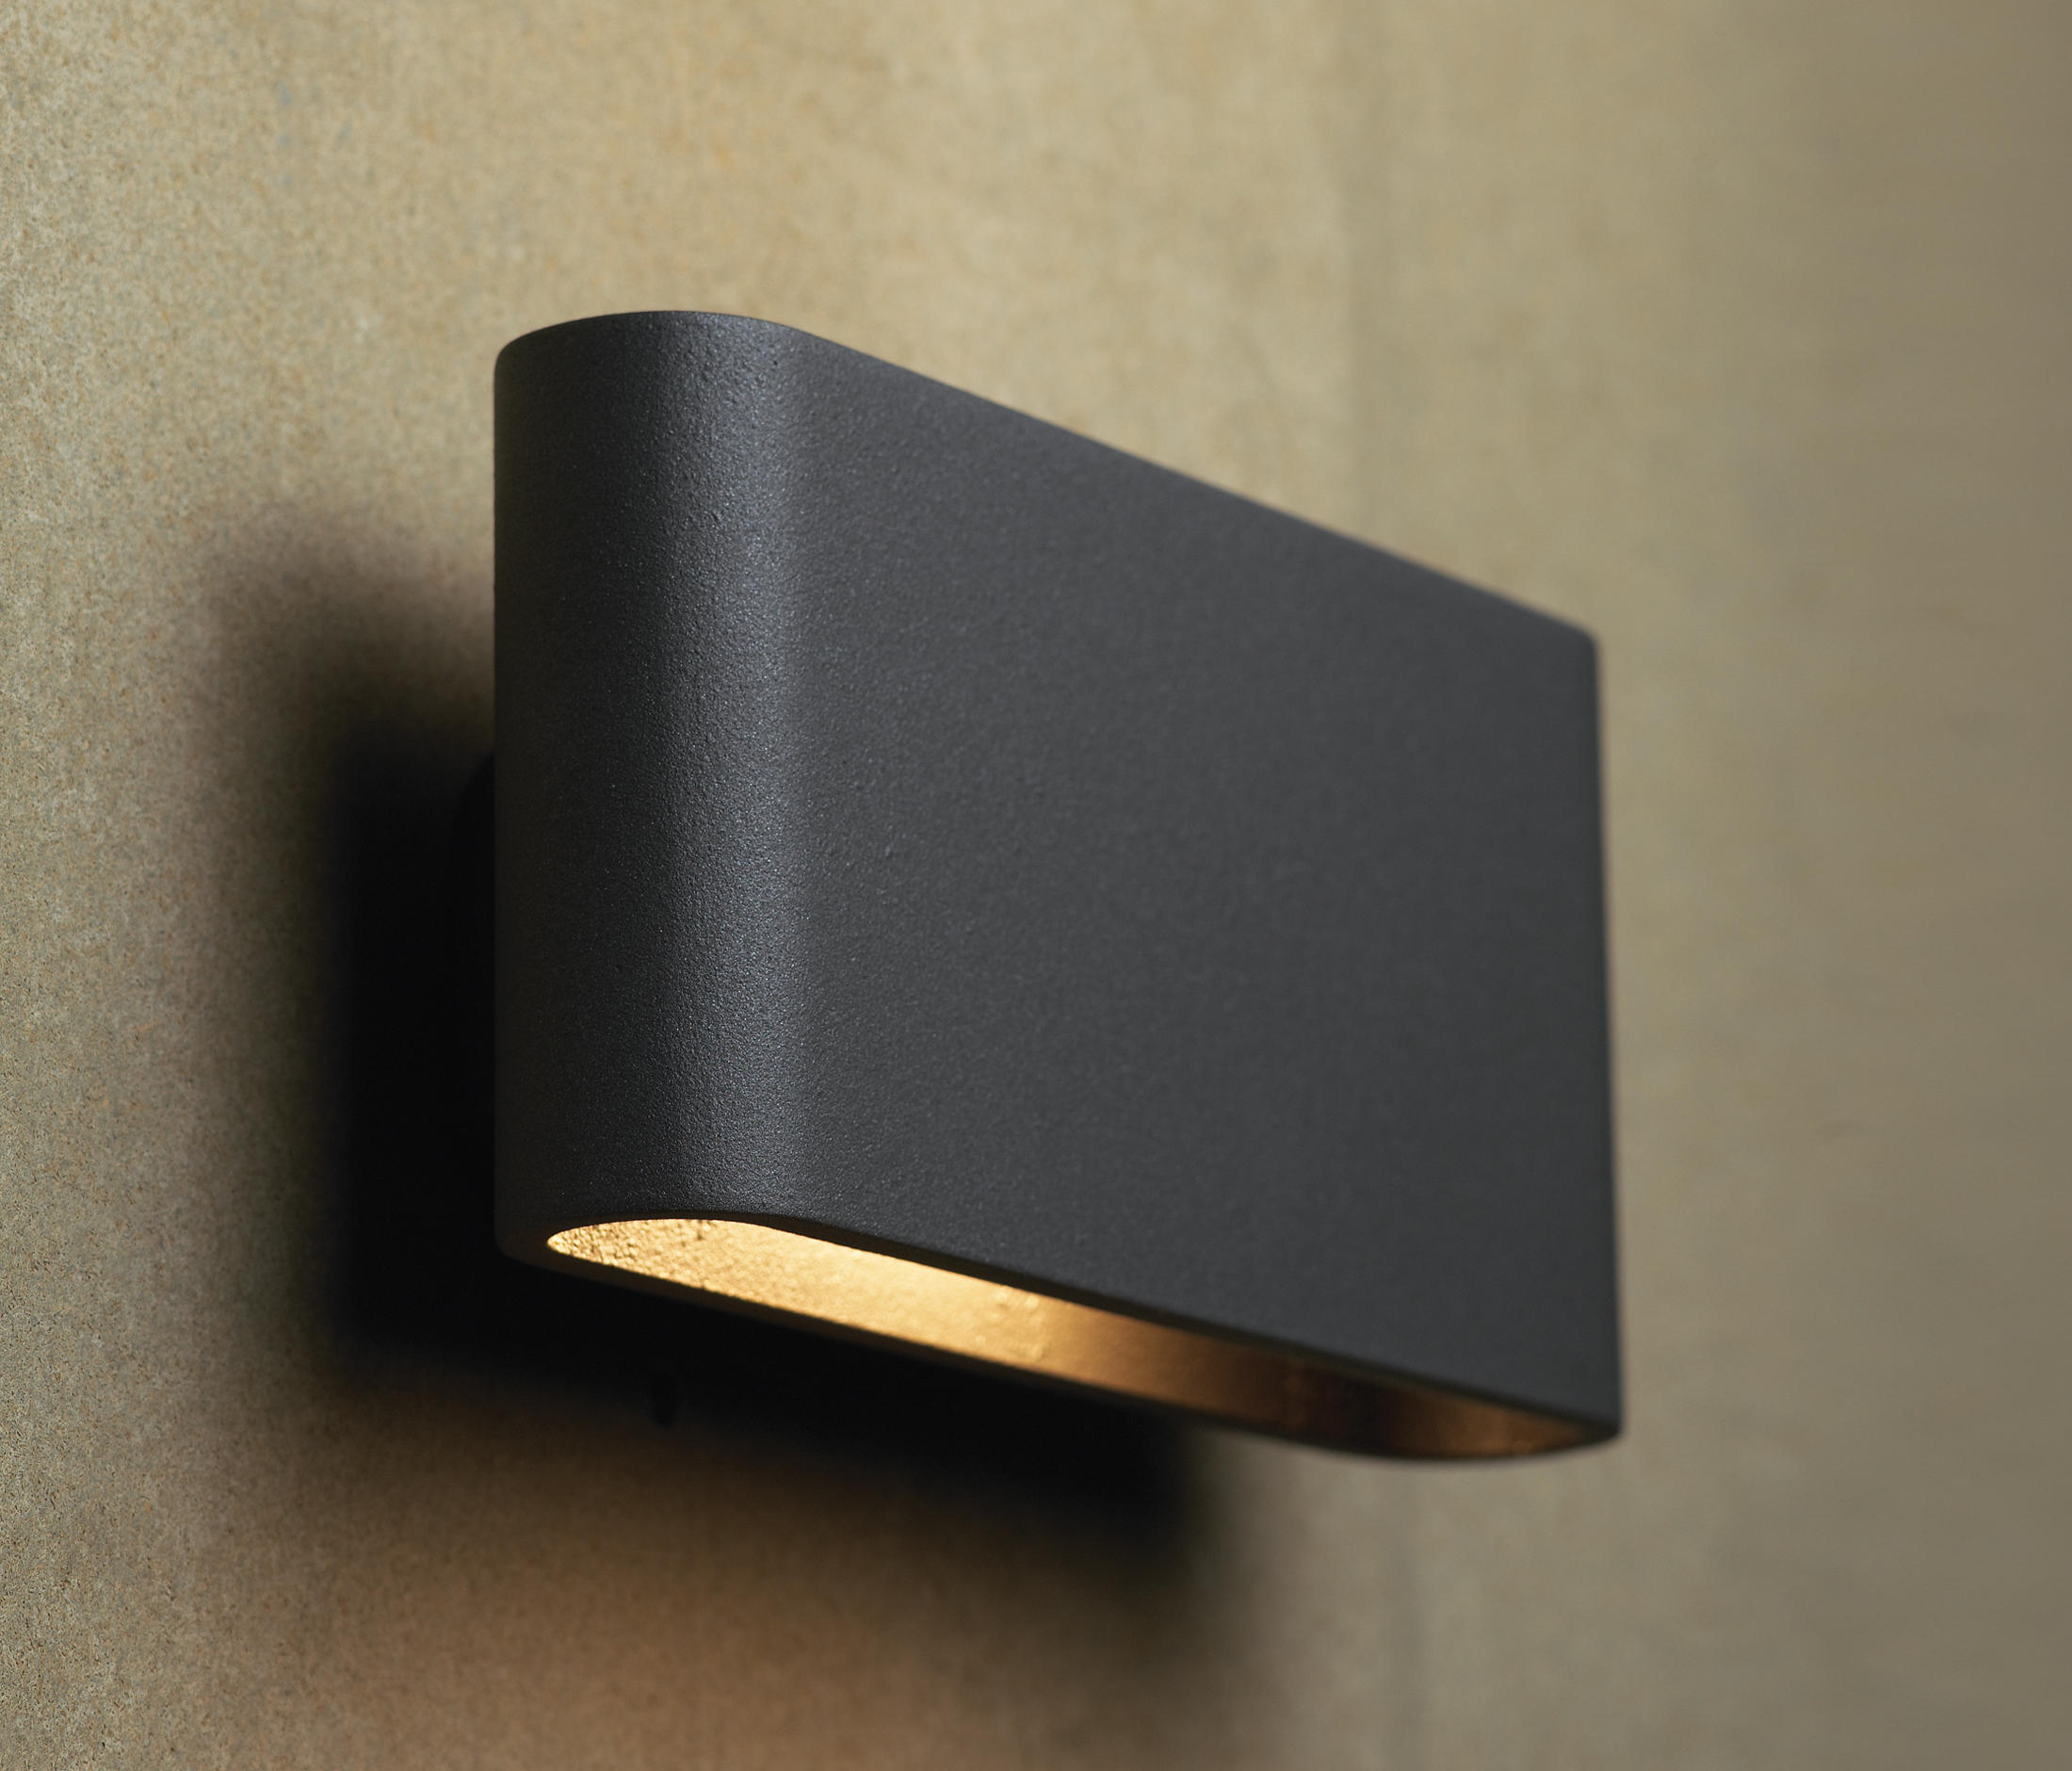 Solo uplighter wall lights from jacco maris architonic solo uplighter by jacco maris aloadofball Choice Image